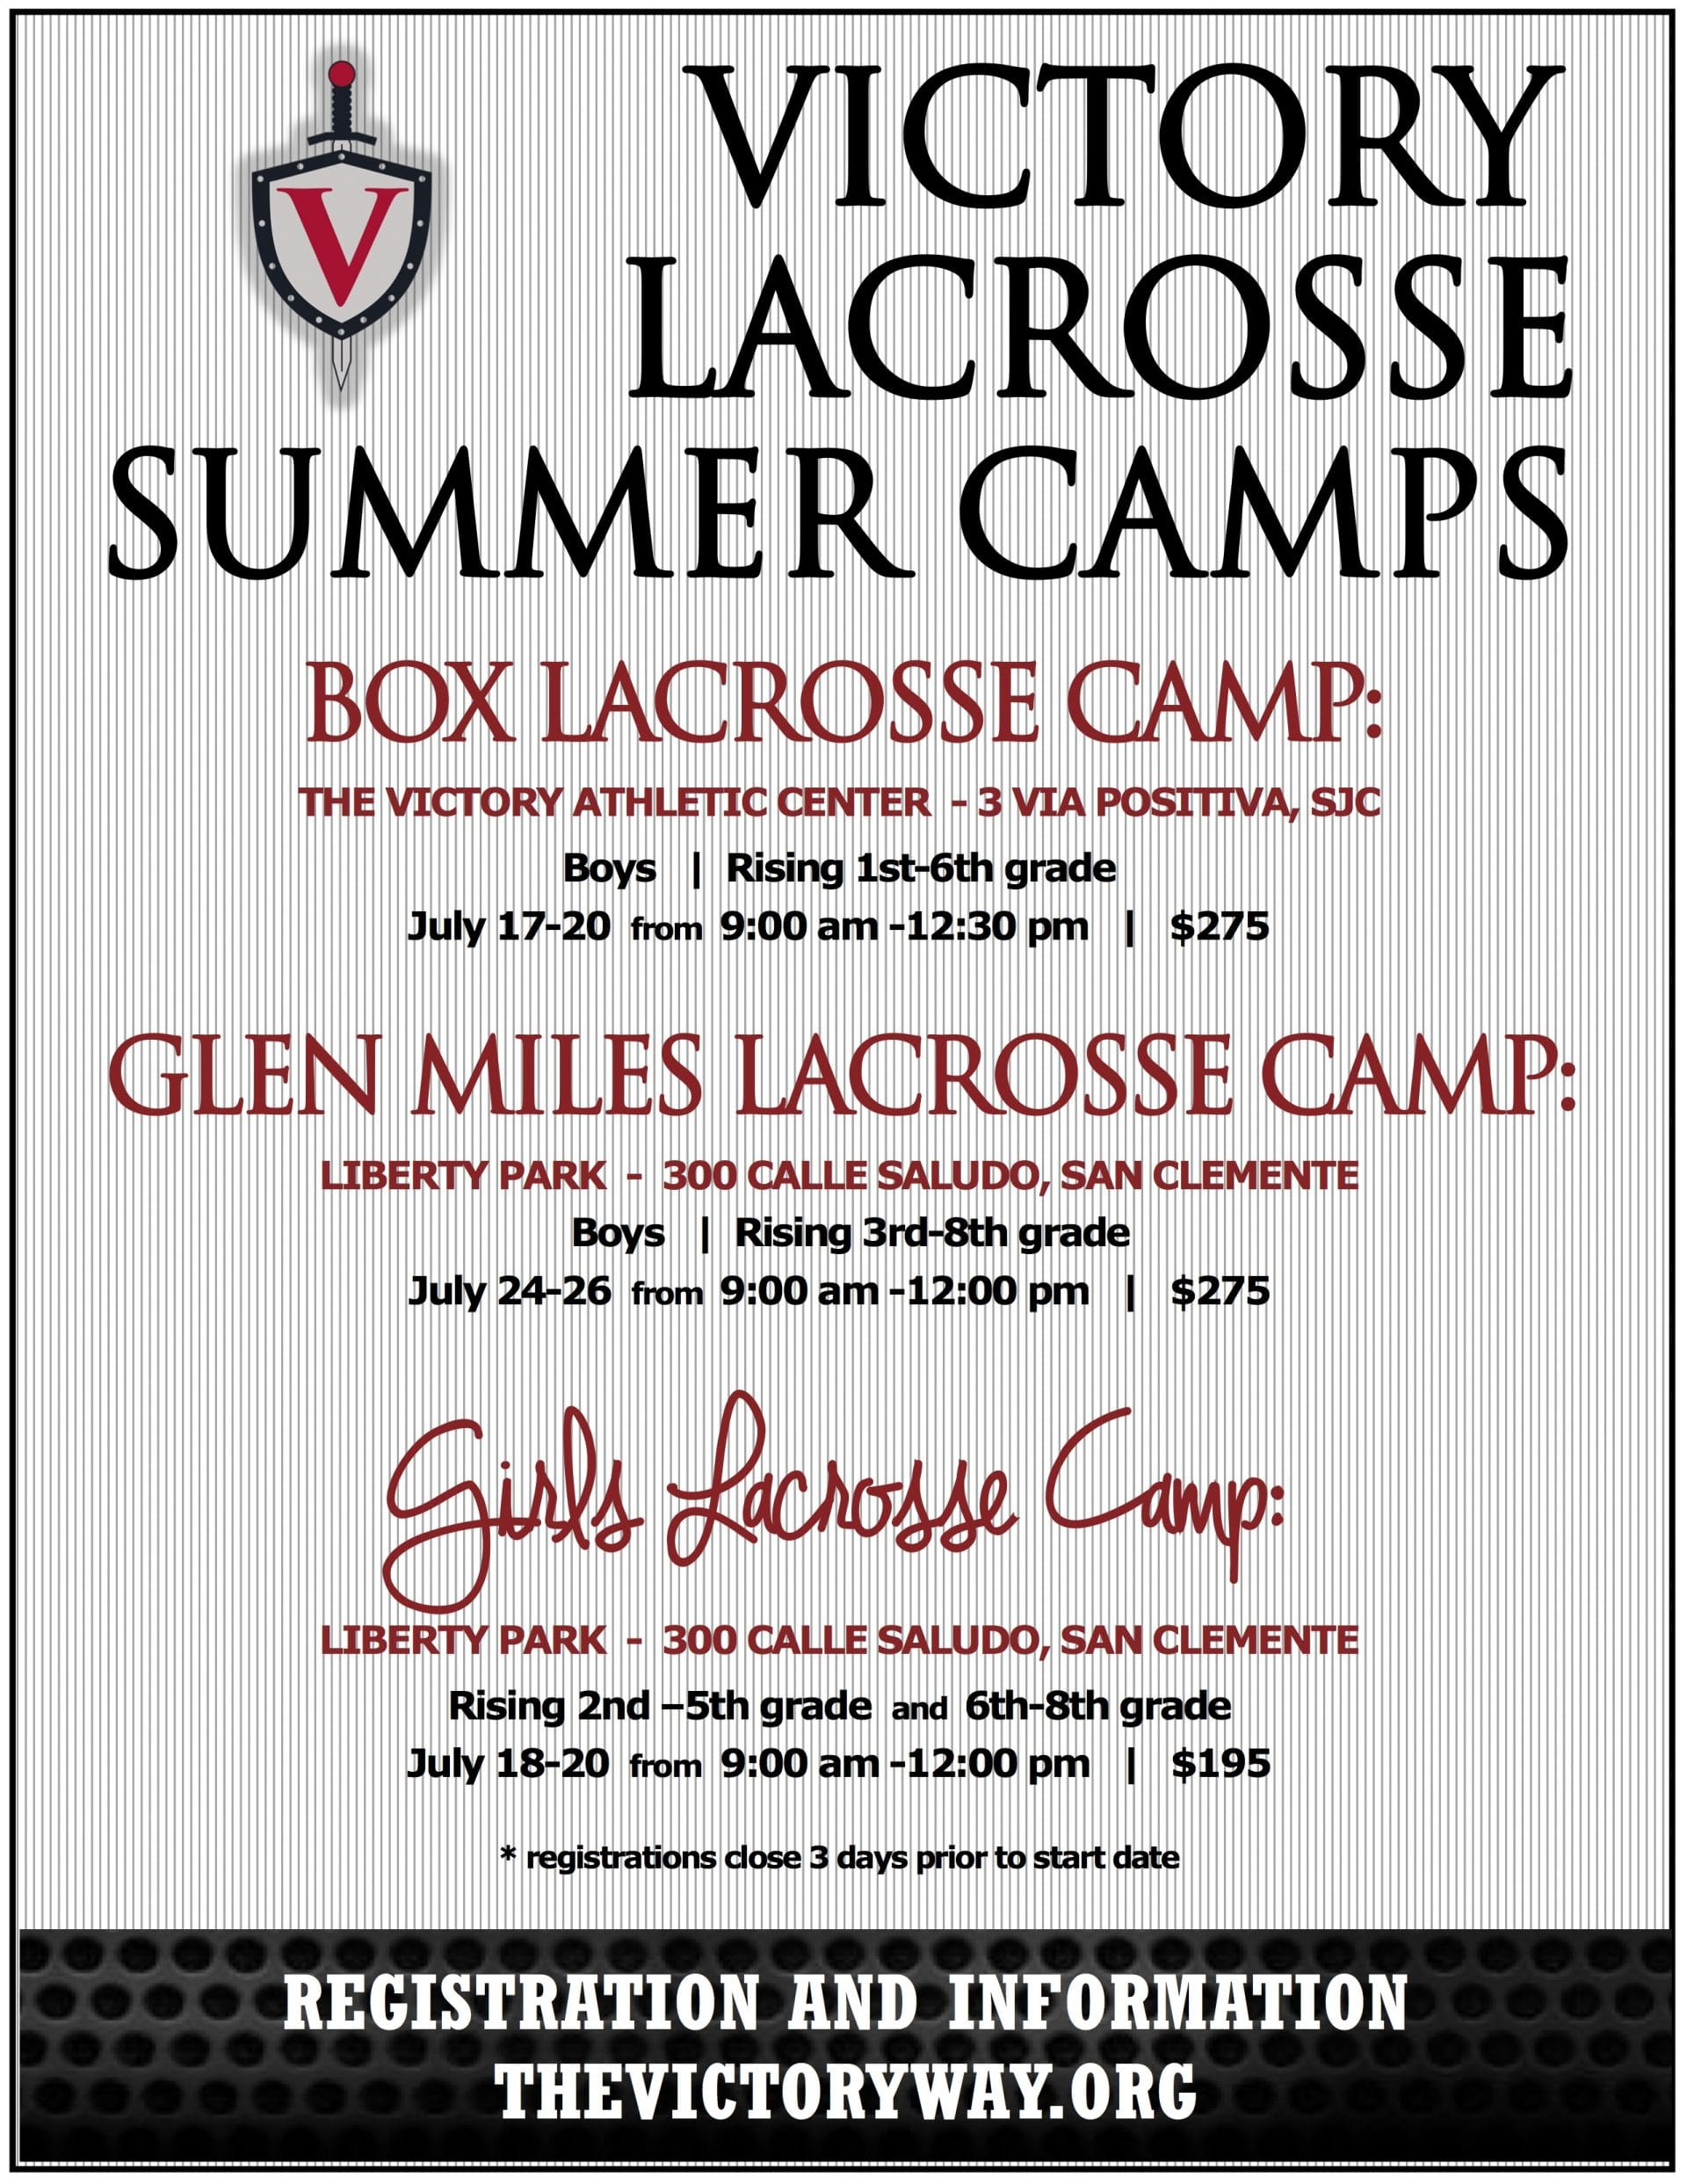 Victory Lacrosse Summer Camps